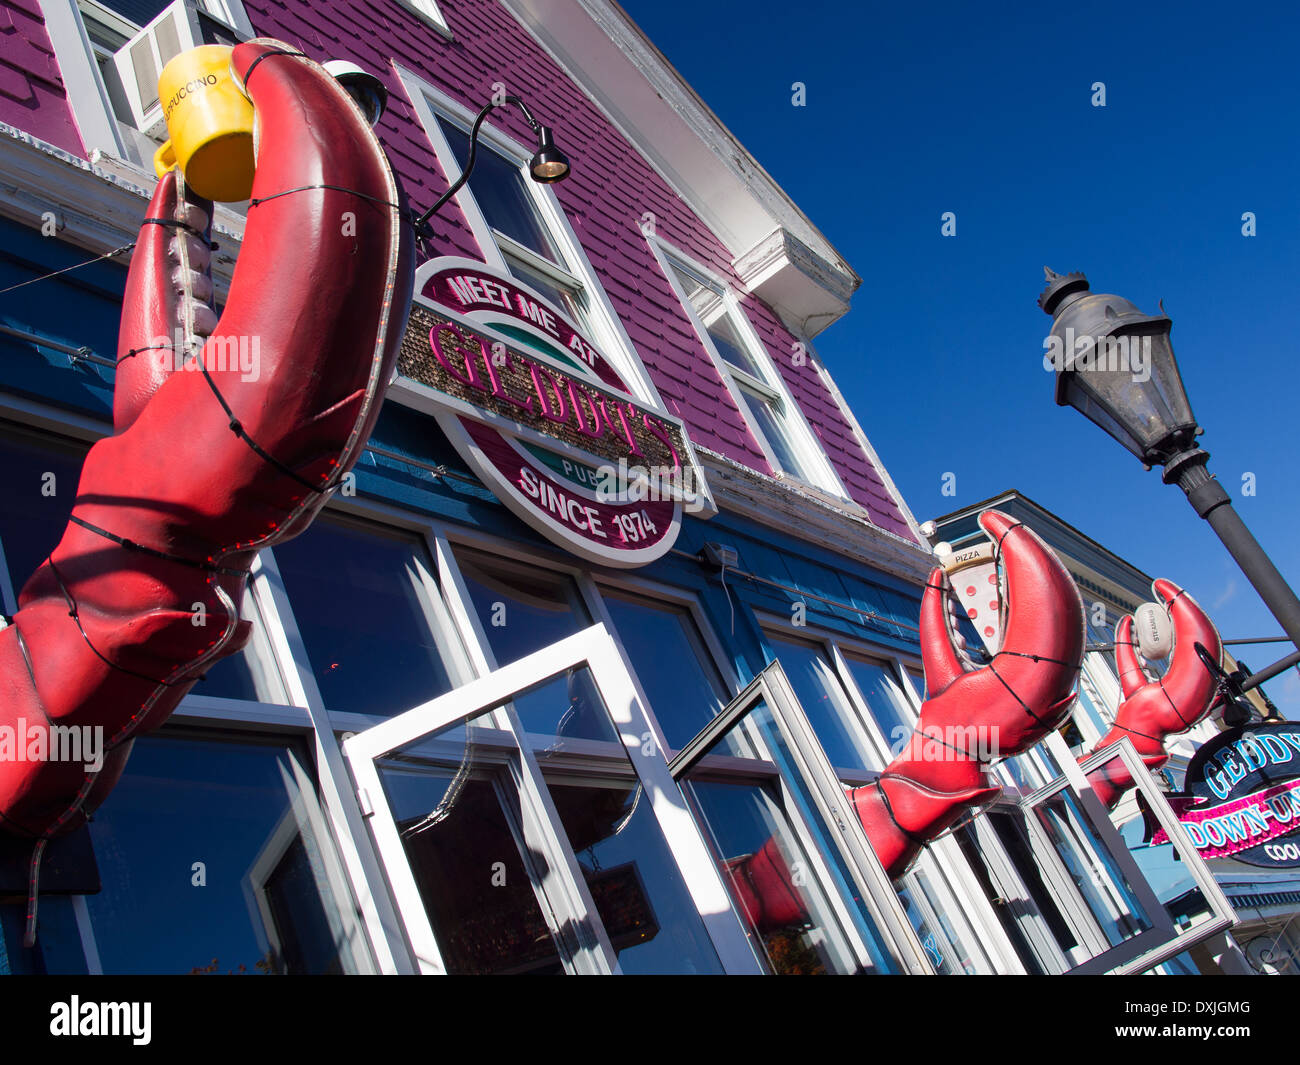 Giant lobster claws outside a seafood restaurant in Bar Harbour, Maine 4 - Stock Image